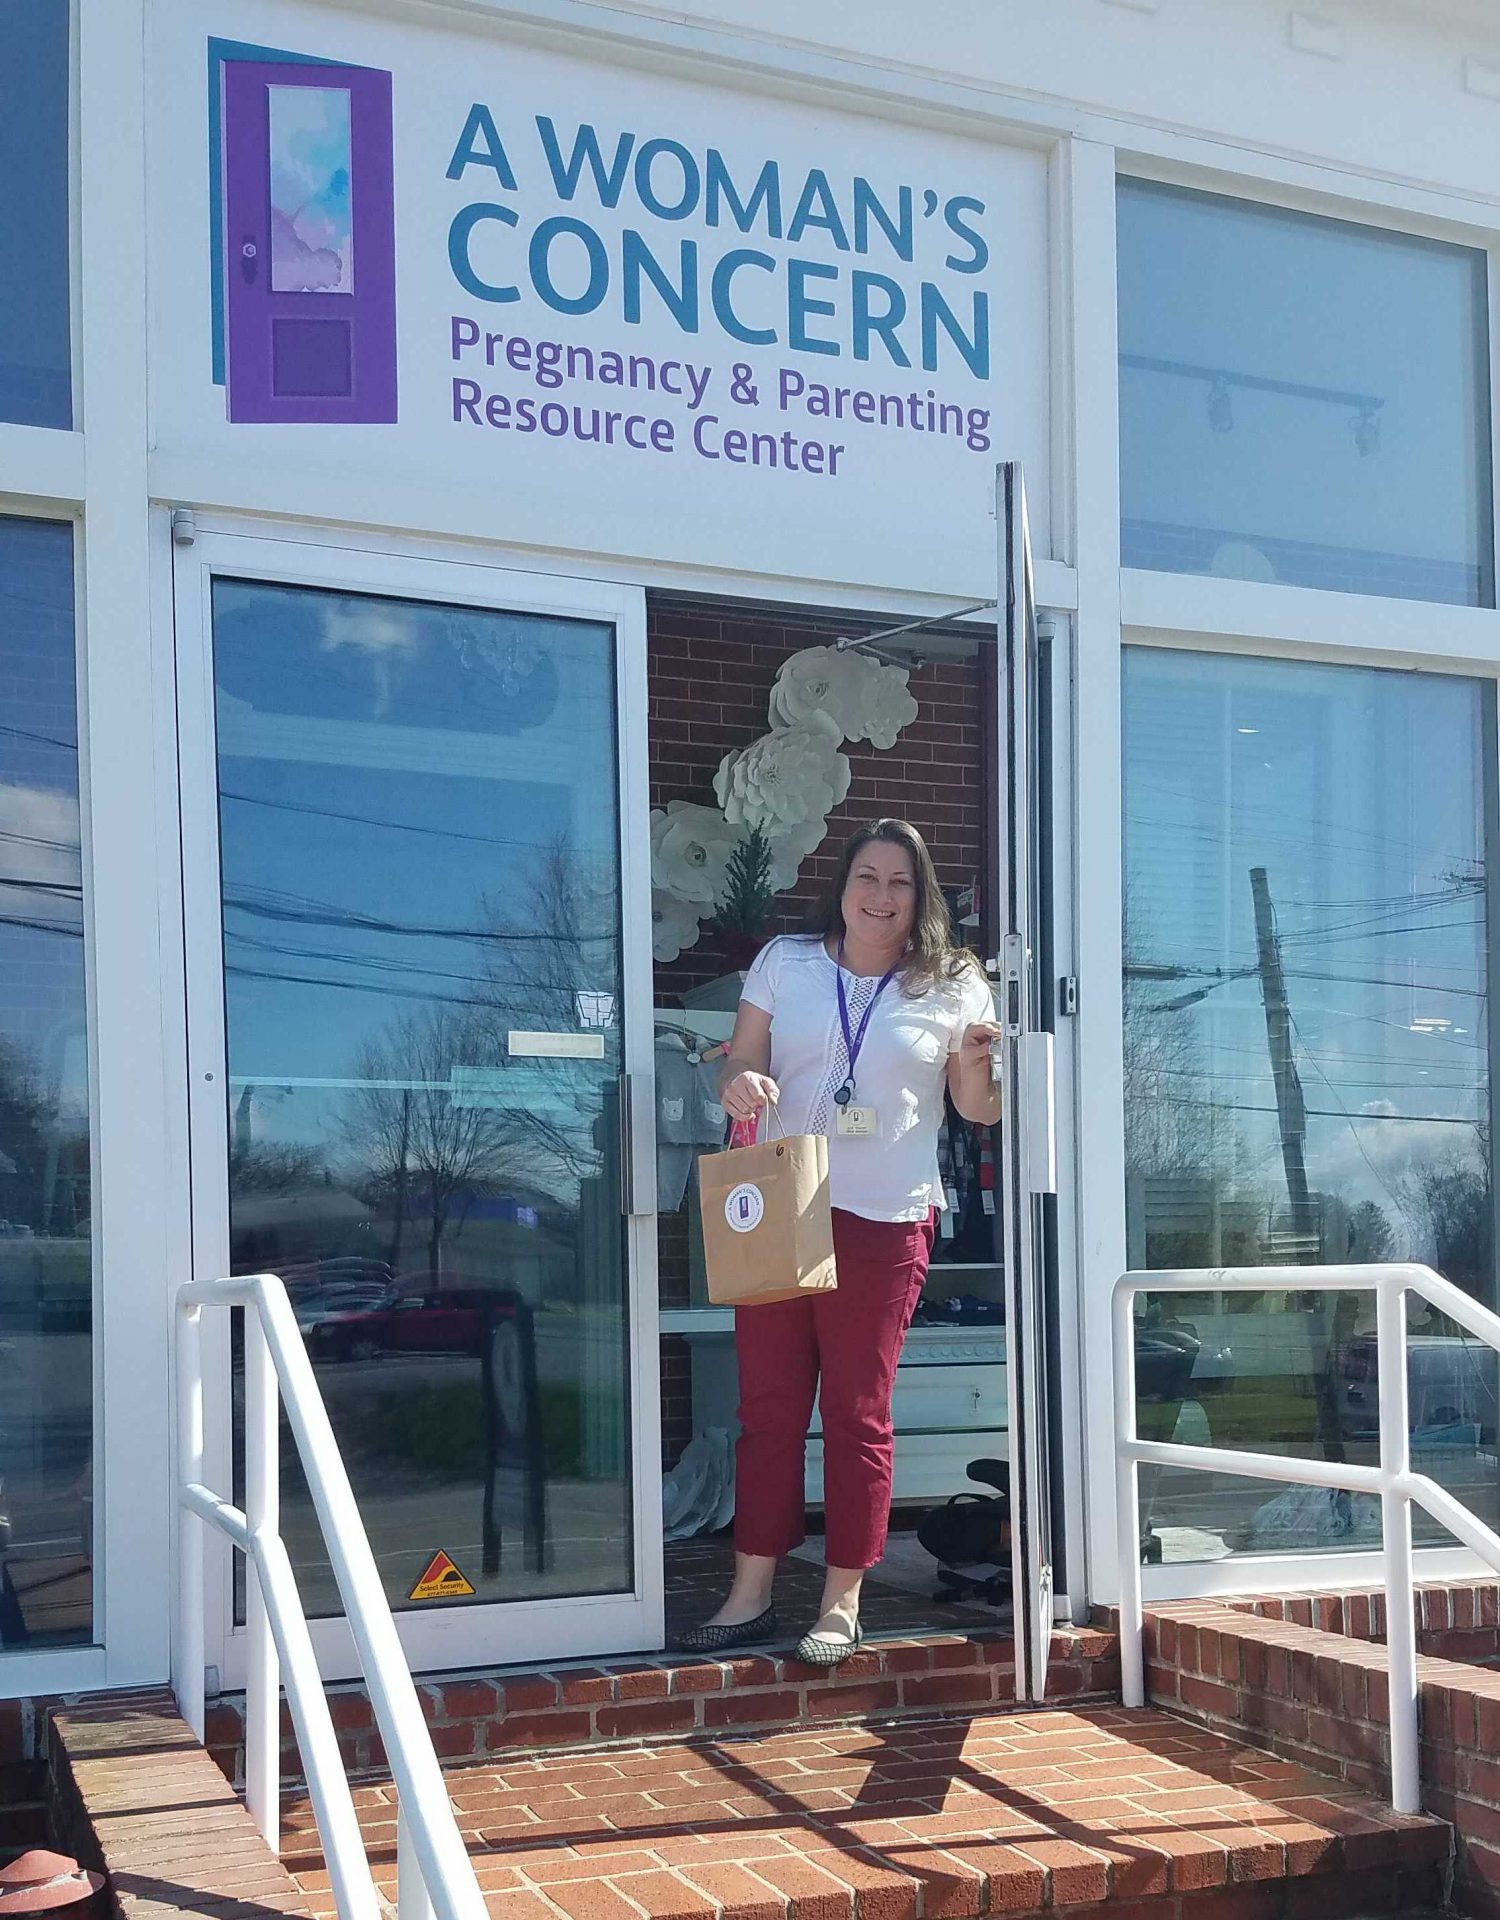 A Woman's Concern Office Manager, Jodi Maurer, as she waits for a client to stop by to pick up diapers